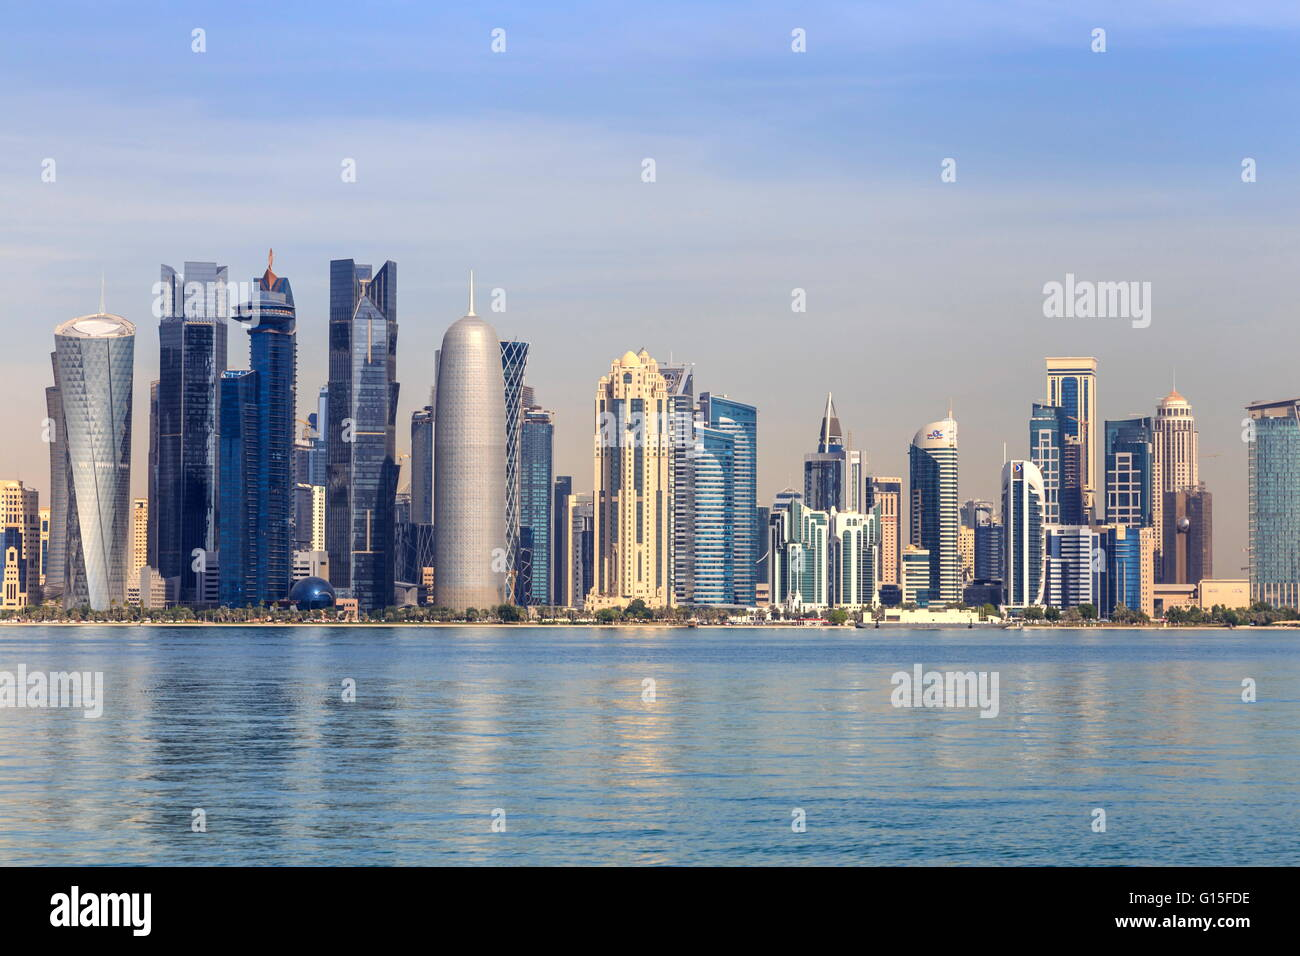 Modern city skyline of West Bay, across the calm waters of Doha Bay, from the Dhow Harbour, Doha, Qatar, Middle - Stock Image